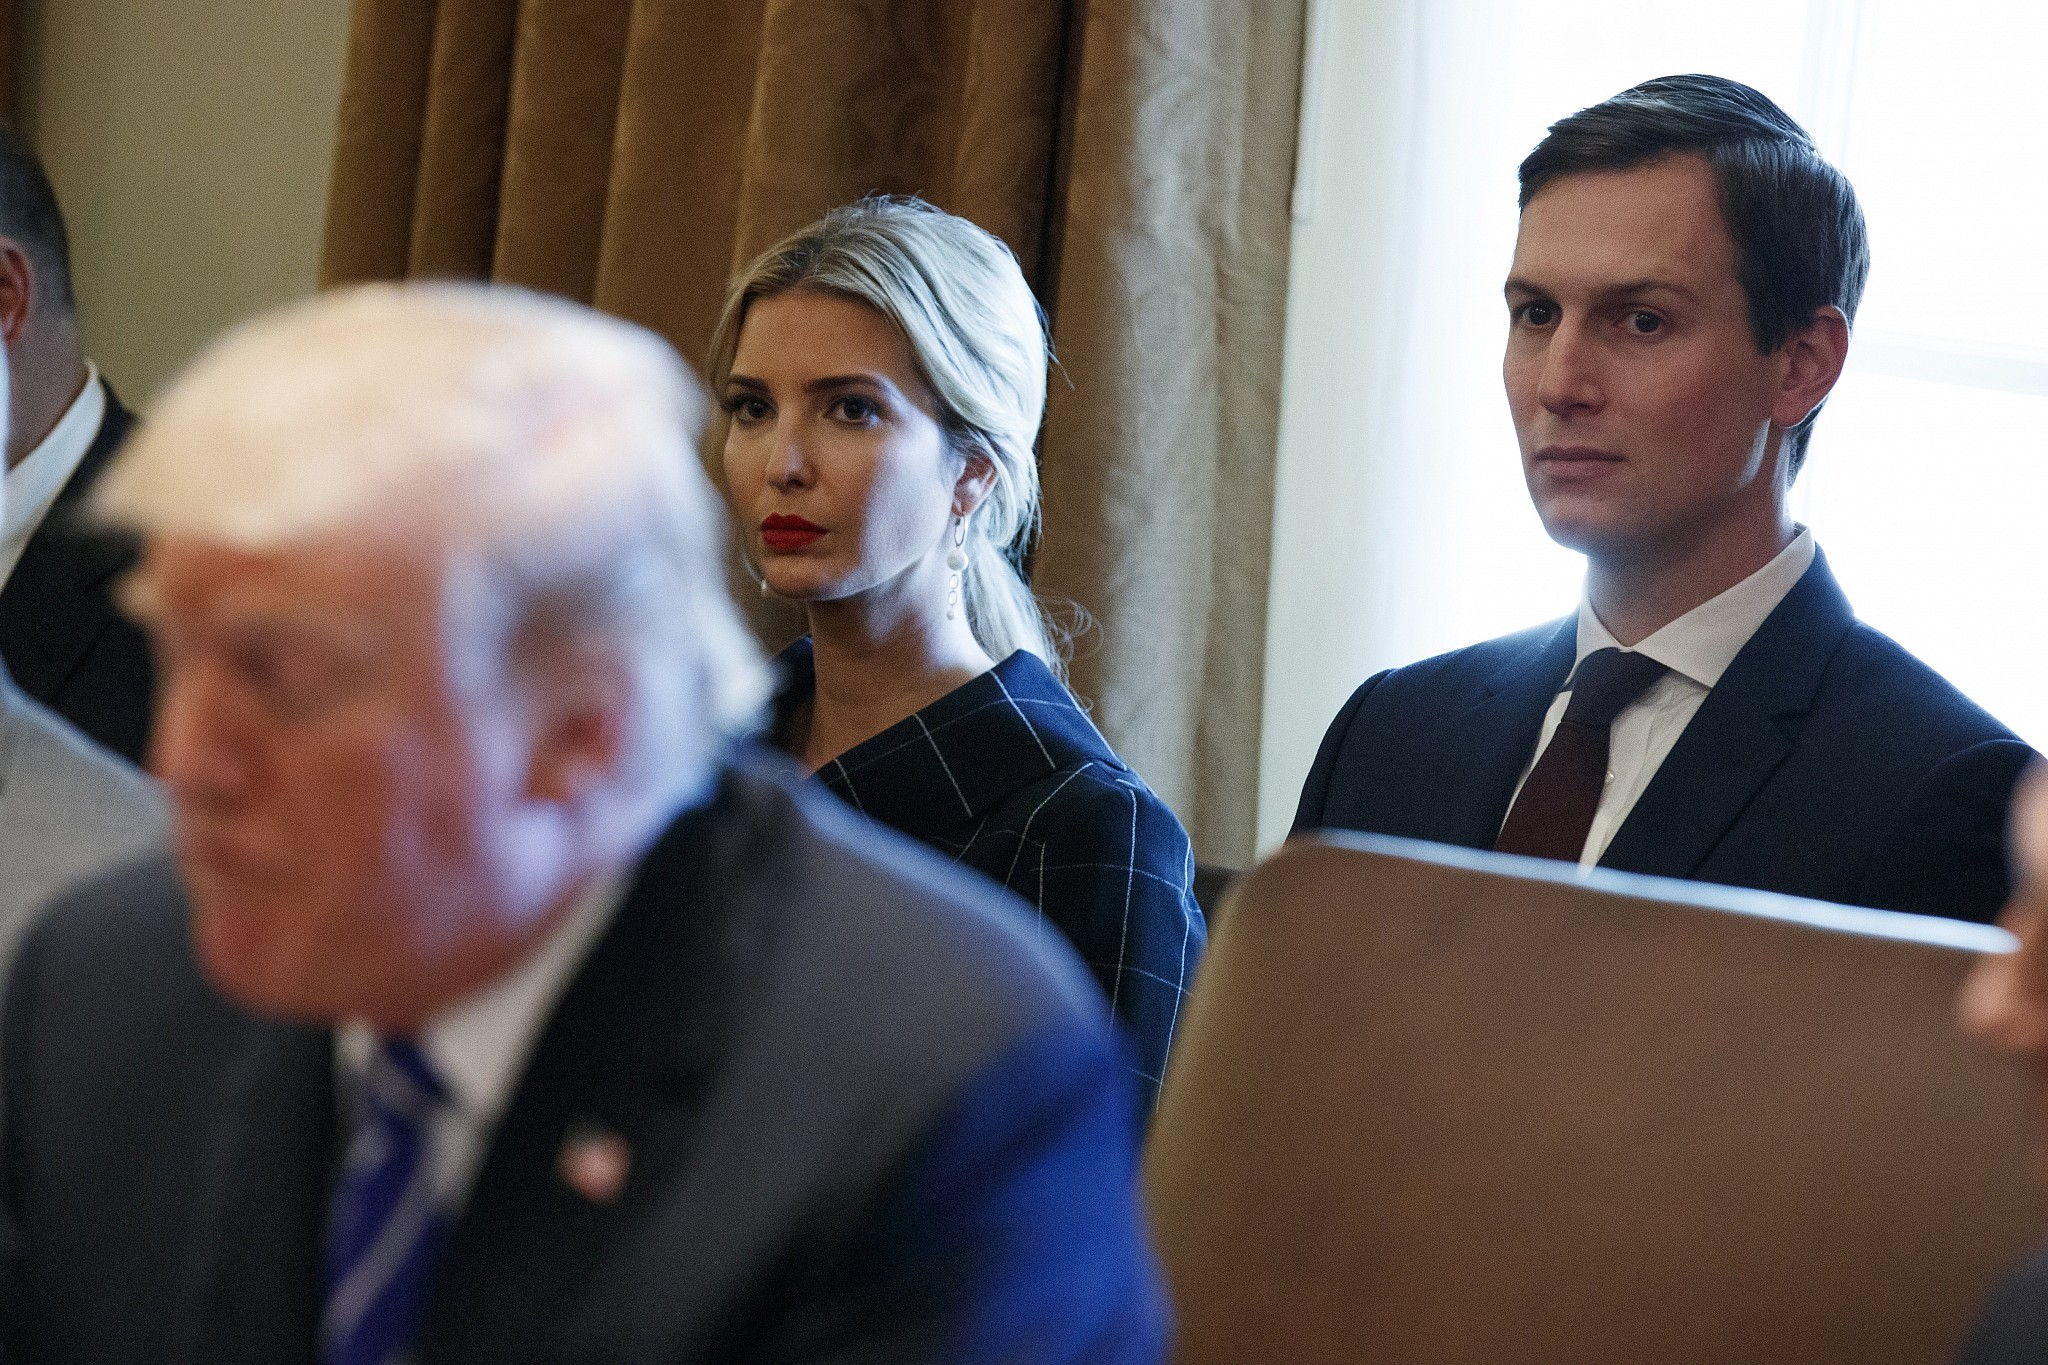 Trump is said to have wanted Ivanka to marry Tom Brady